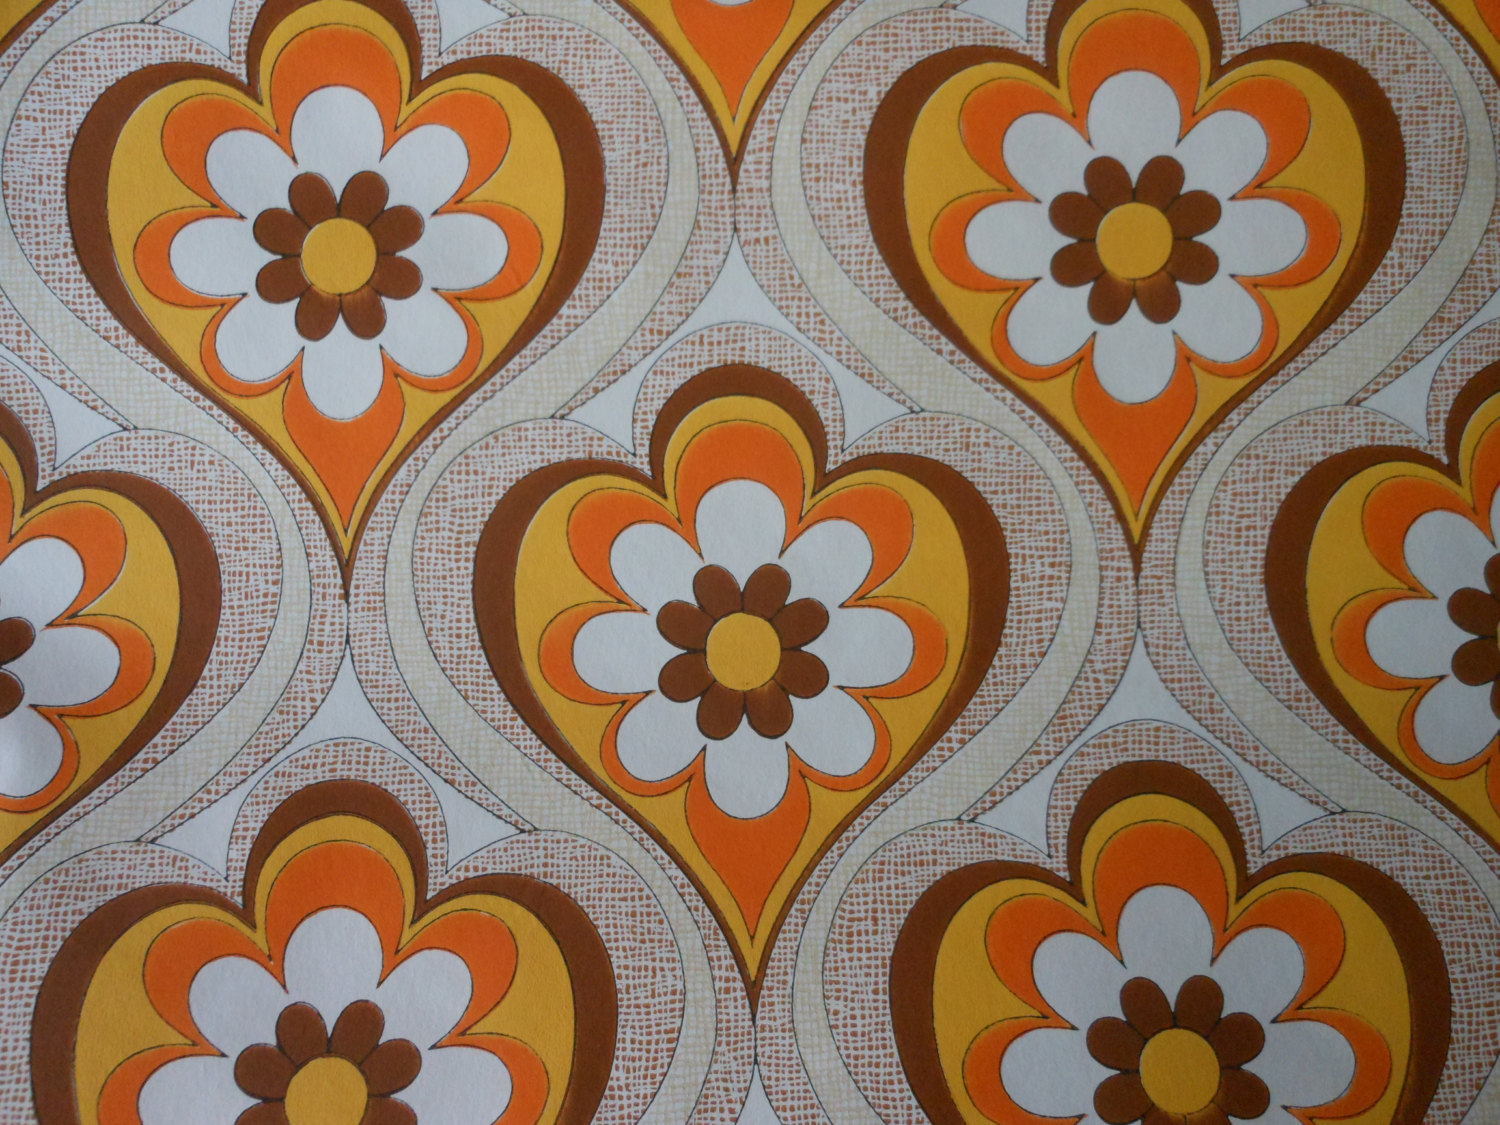 1970s Wallpaper Patterns 1970s retro wallpaper by 1500x1125